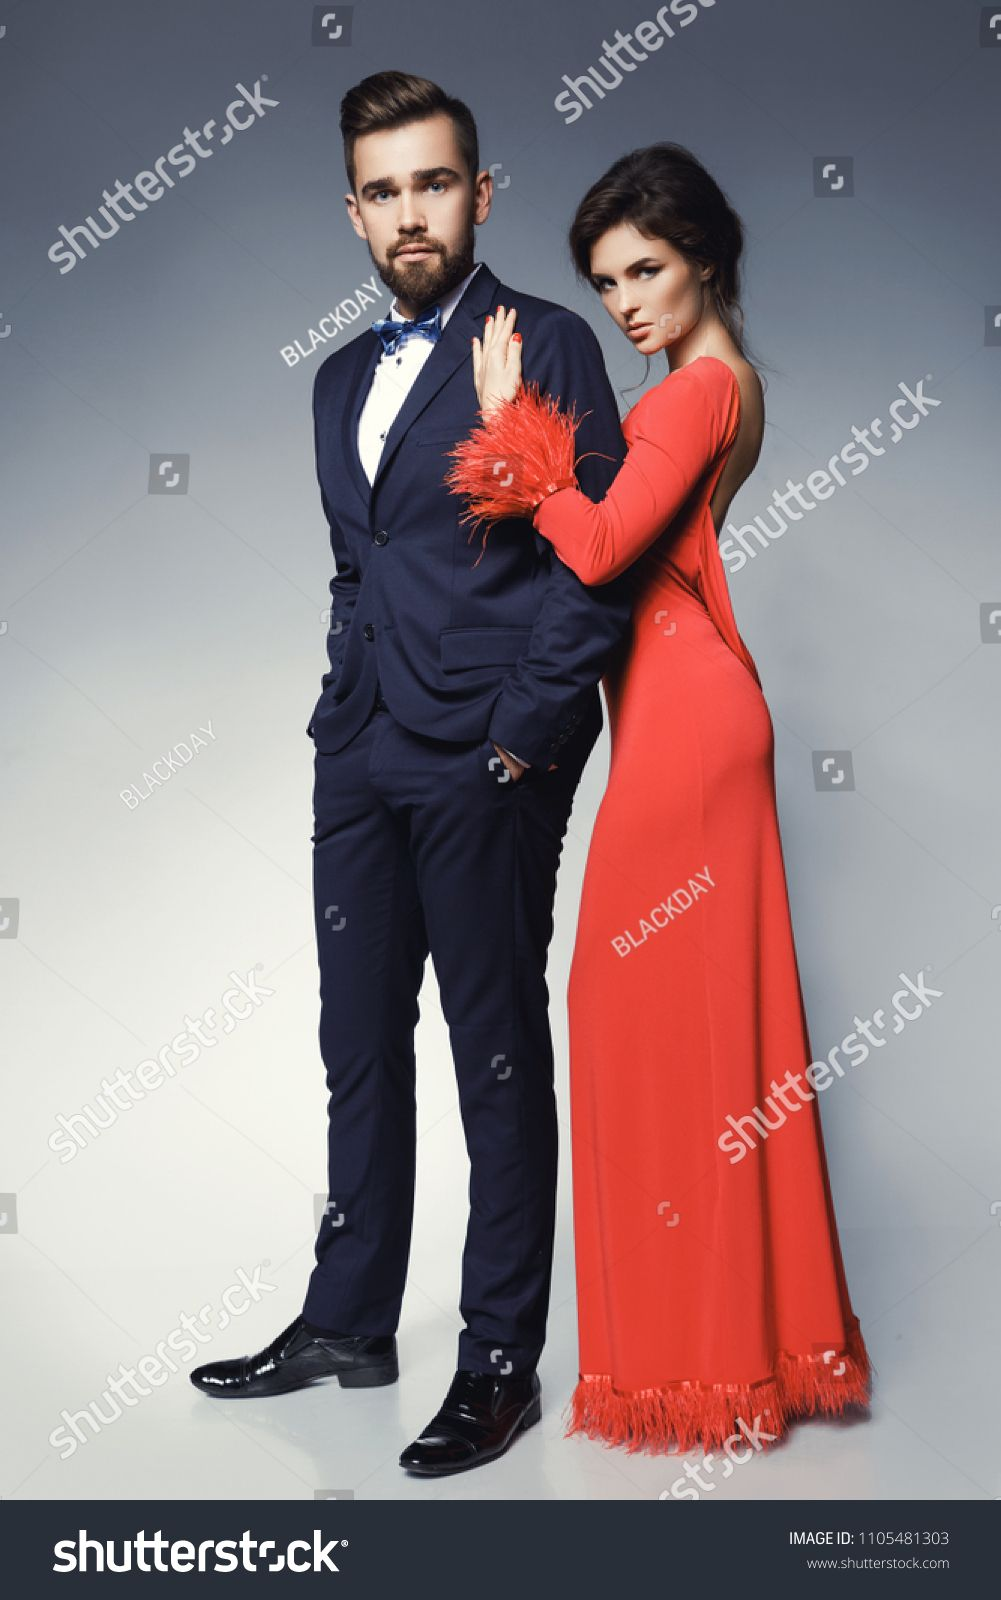 Attractive And Well Dressed Couple Posing In Studio Woman In Beautiful Red Dress And Man Wearing Blue Classical Suit Beautiful Red Dresses Women Couple Posing [ 1600 x 1001 Pixel ]